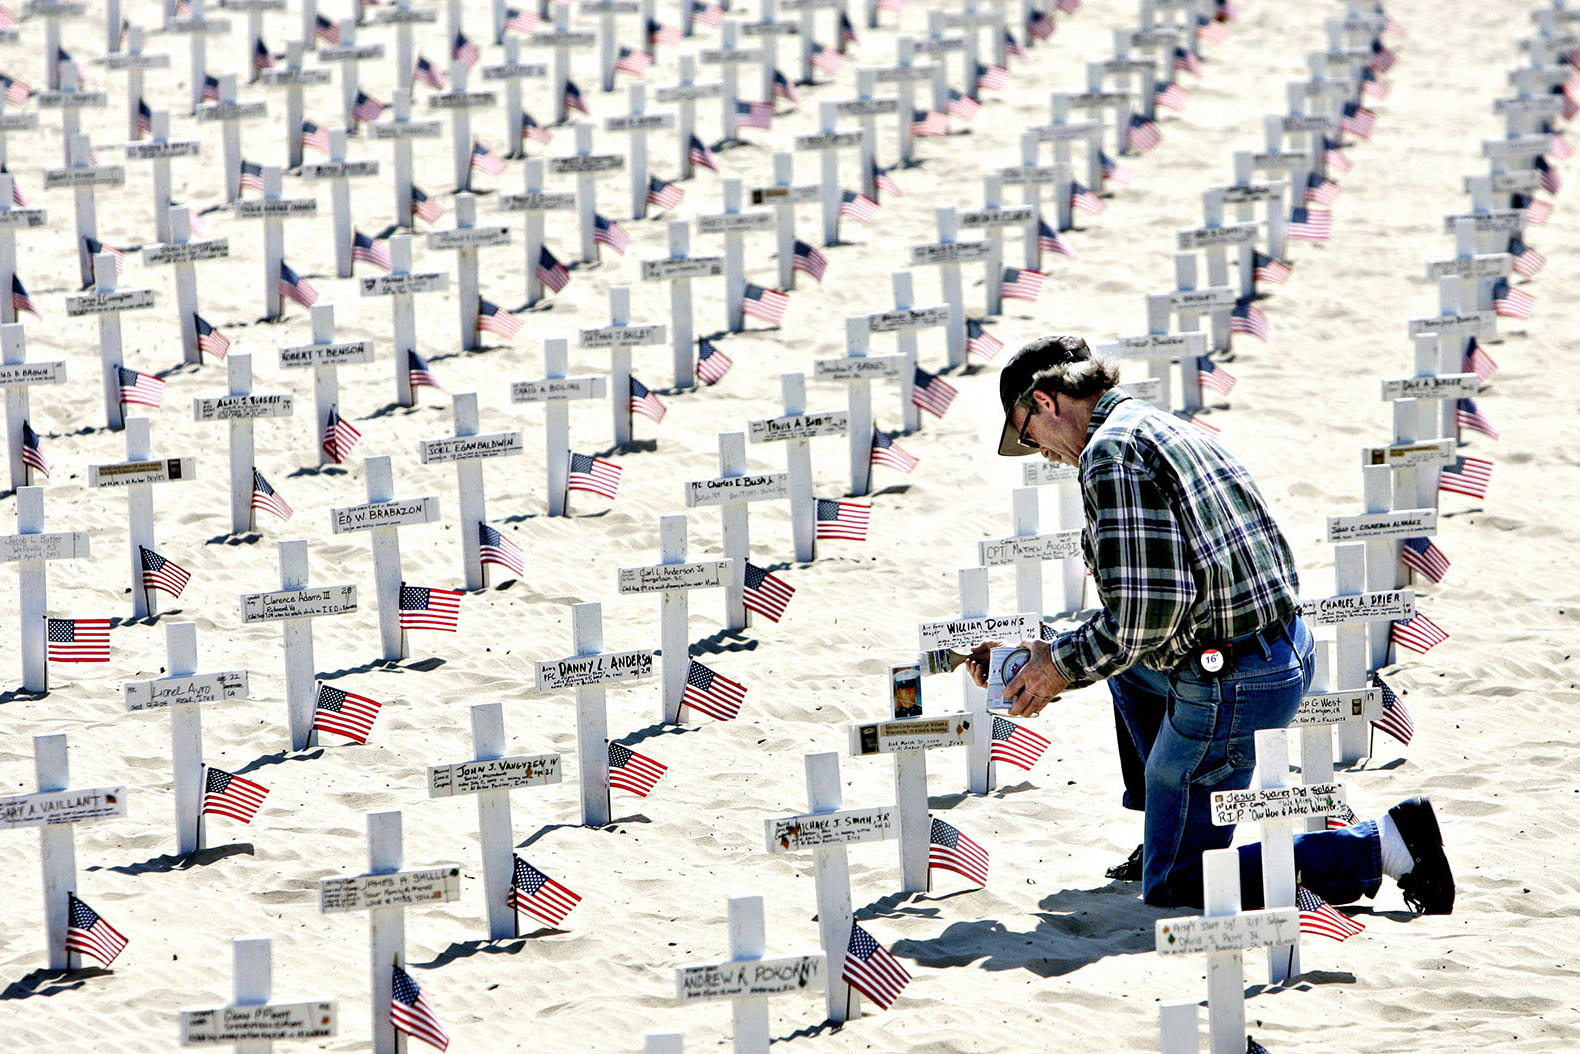 A war protest in Santa Barbara: A cross for every American soldiers that has died in Iraq and Afghanistan.